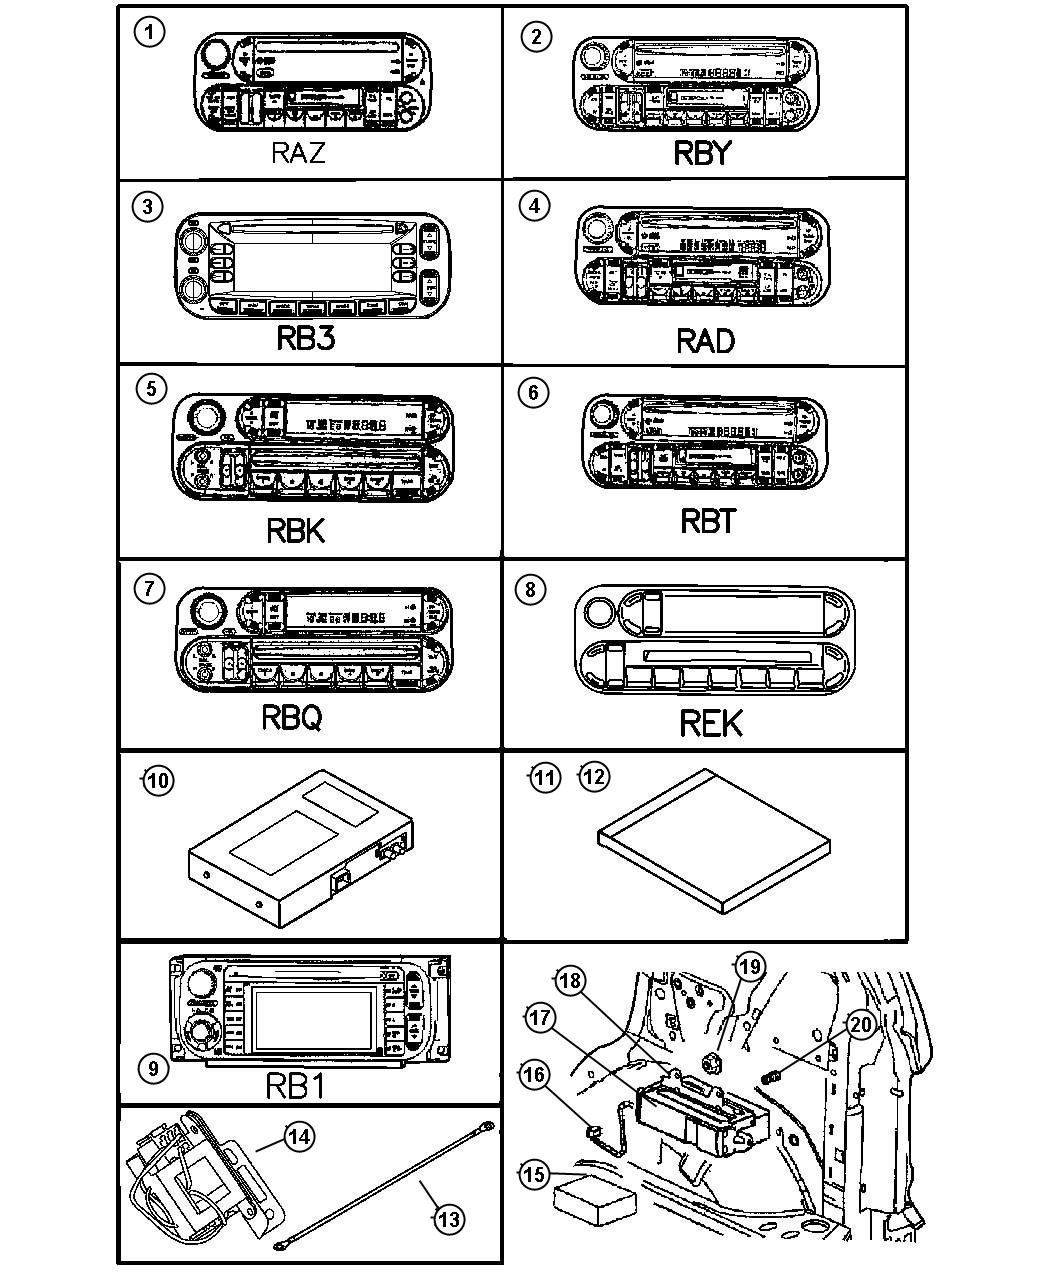 i2171758 Jeep Uconnect Wiring Diagram on abs wiring diagram, dvd wiring diagram, chevrolet wiring diagram, dodge wiring diagram, audi wiring diagram, speed control wiring diagram, mygig wiring diagram, alarm wiring diagram, kia wiring diagram, audio wiring diagram, ram wiring diagram, a/c wiring diagram, radio wiring diagram, chrysler car stereo wiring diagram, toyota wiring diagram, honda wiring diagram, 2008 chrysler 300 wiring diagram, jeep wiring diagram, lincoln wiring diagram, hemi wiring diagram,